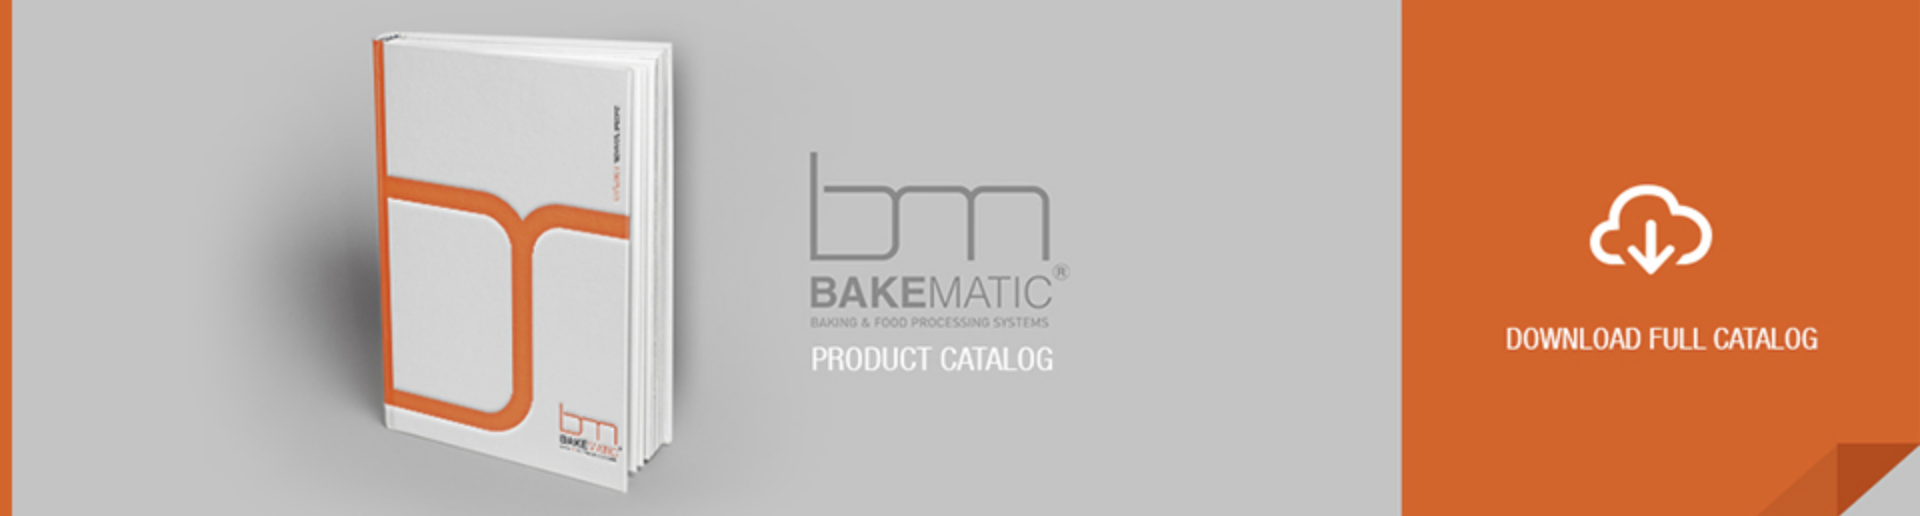 Bakematic Catalog